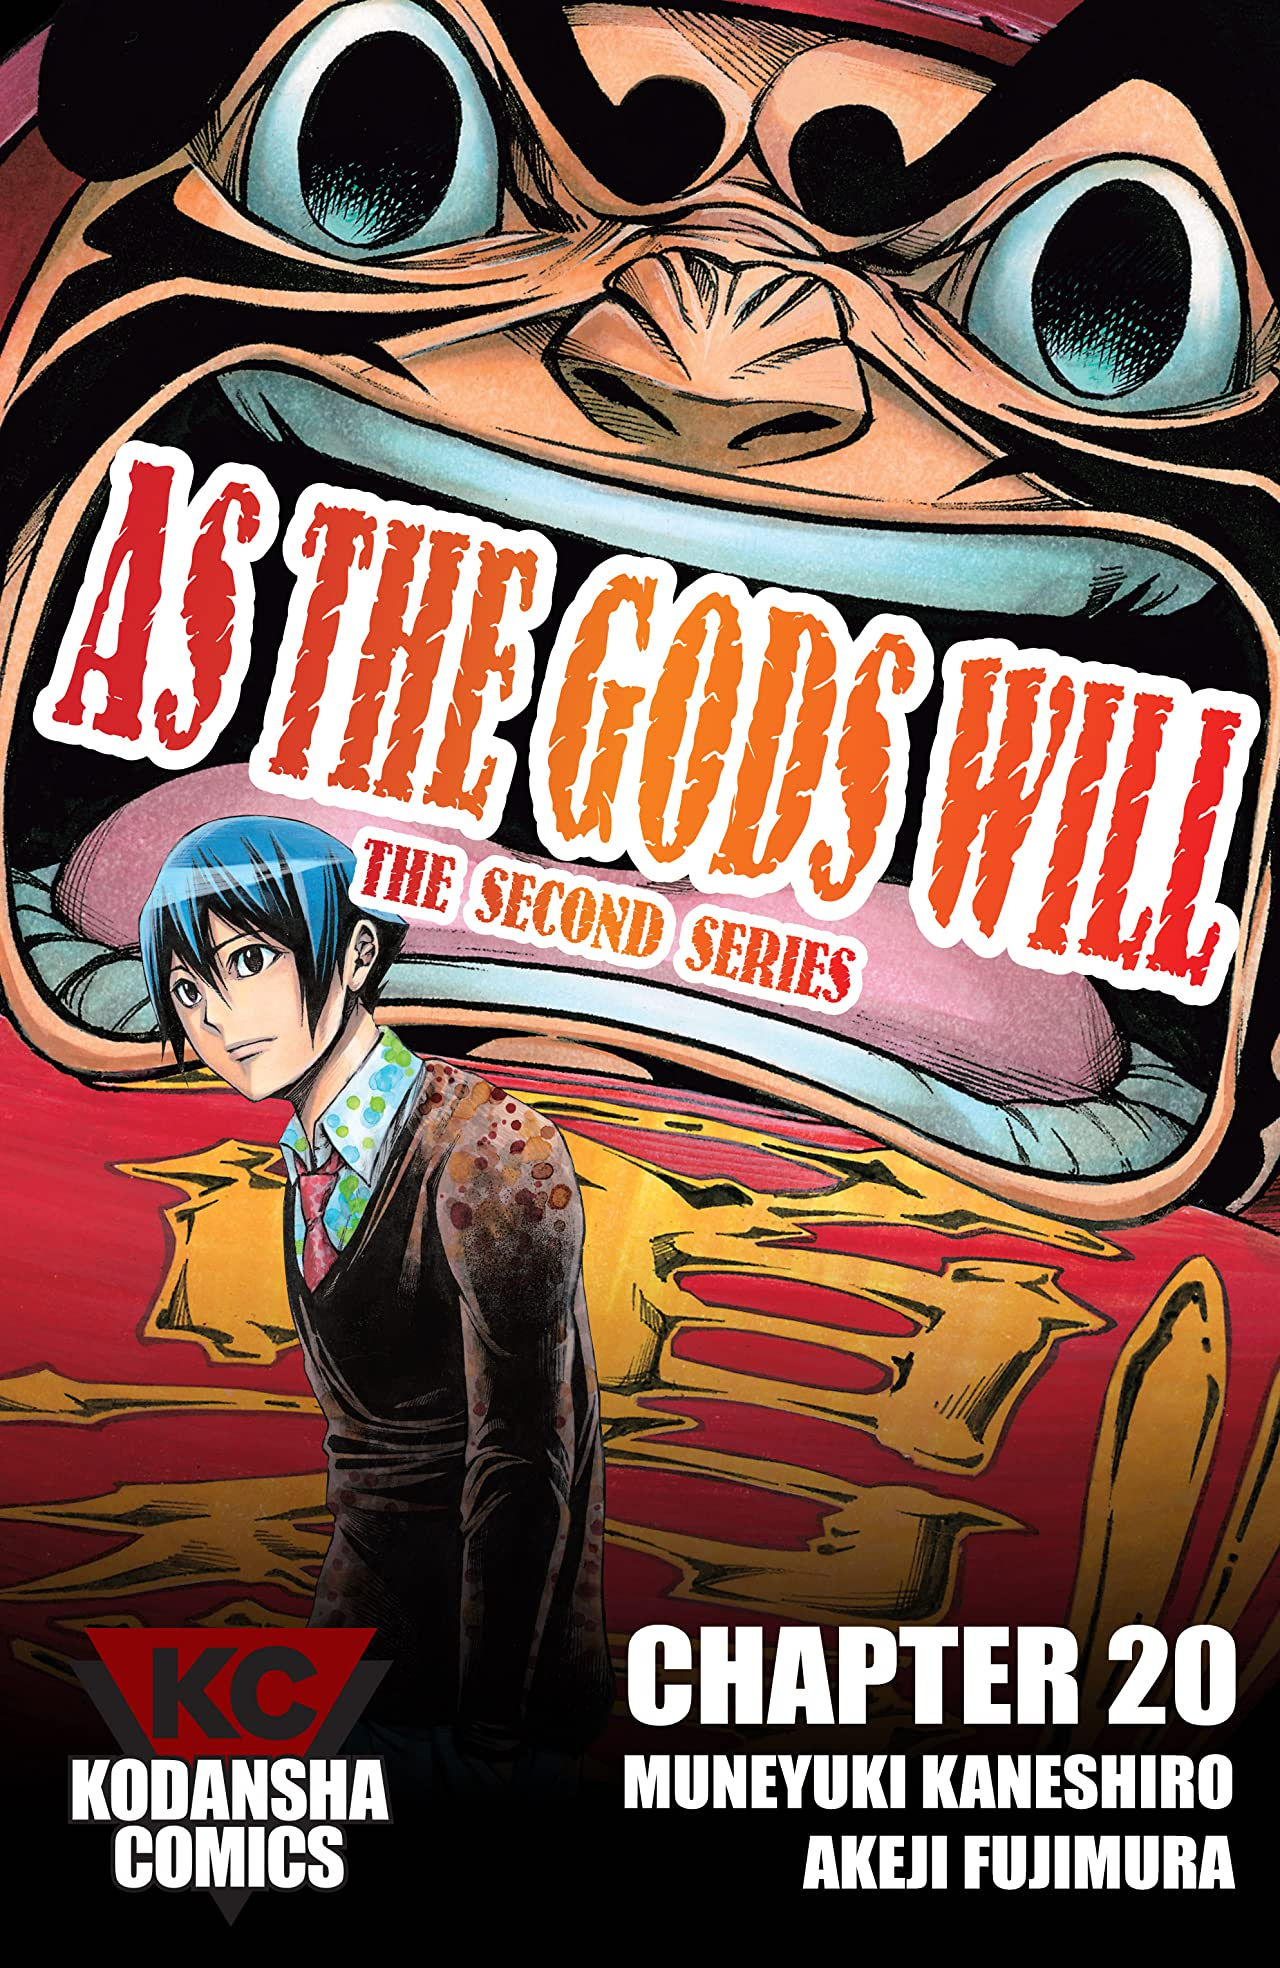 As The Gods Will: The Second Series #20